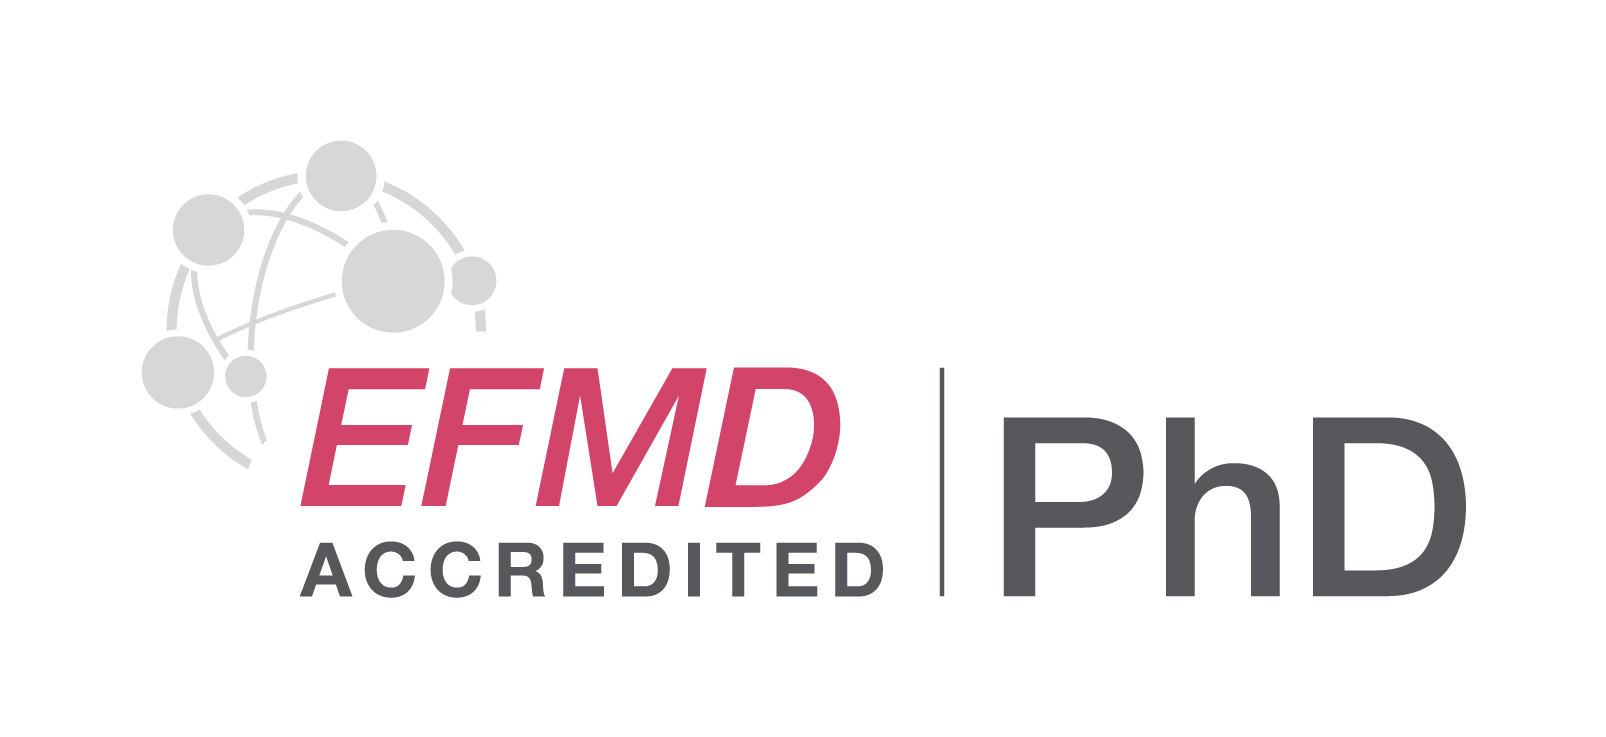 EFMD Accredited PhD